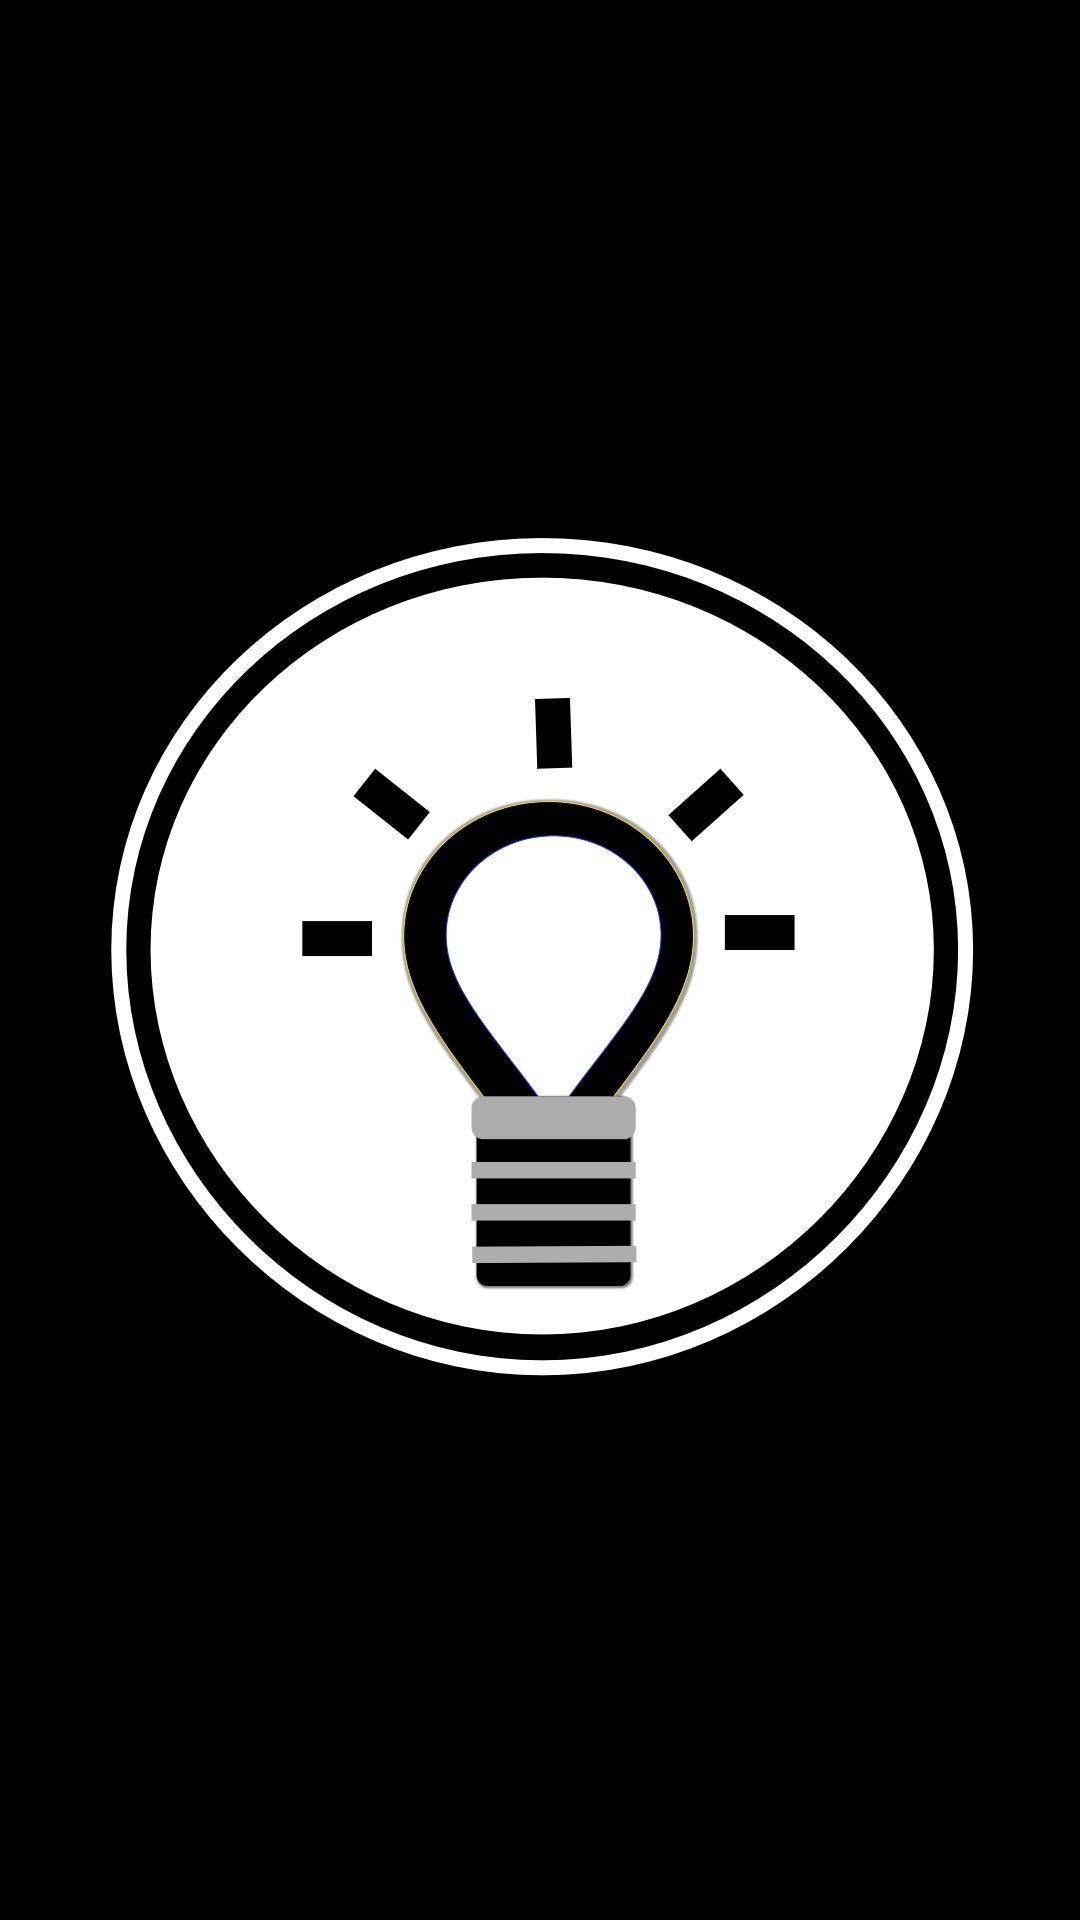 Instagram-cover-lightbulb-black-lotnotes.jpg